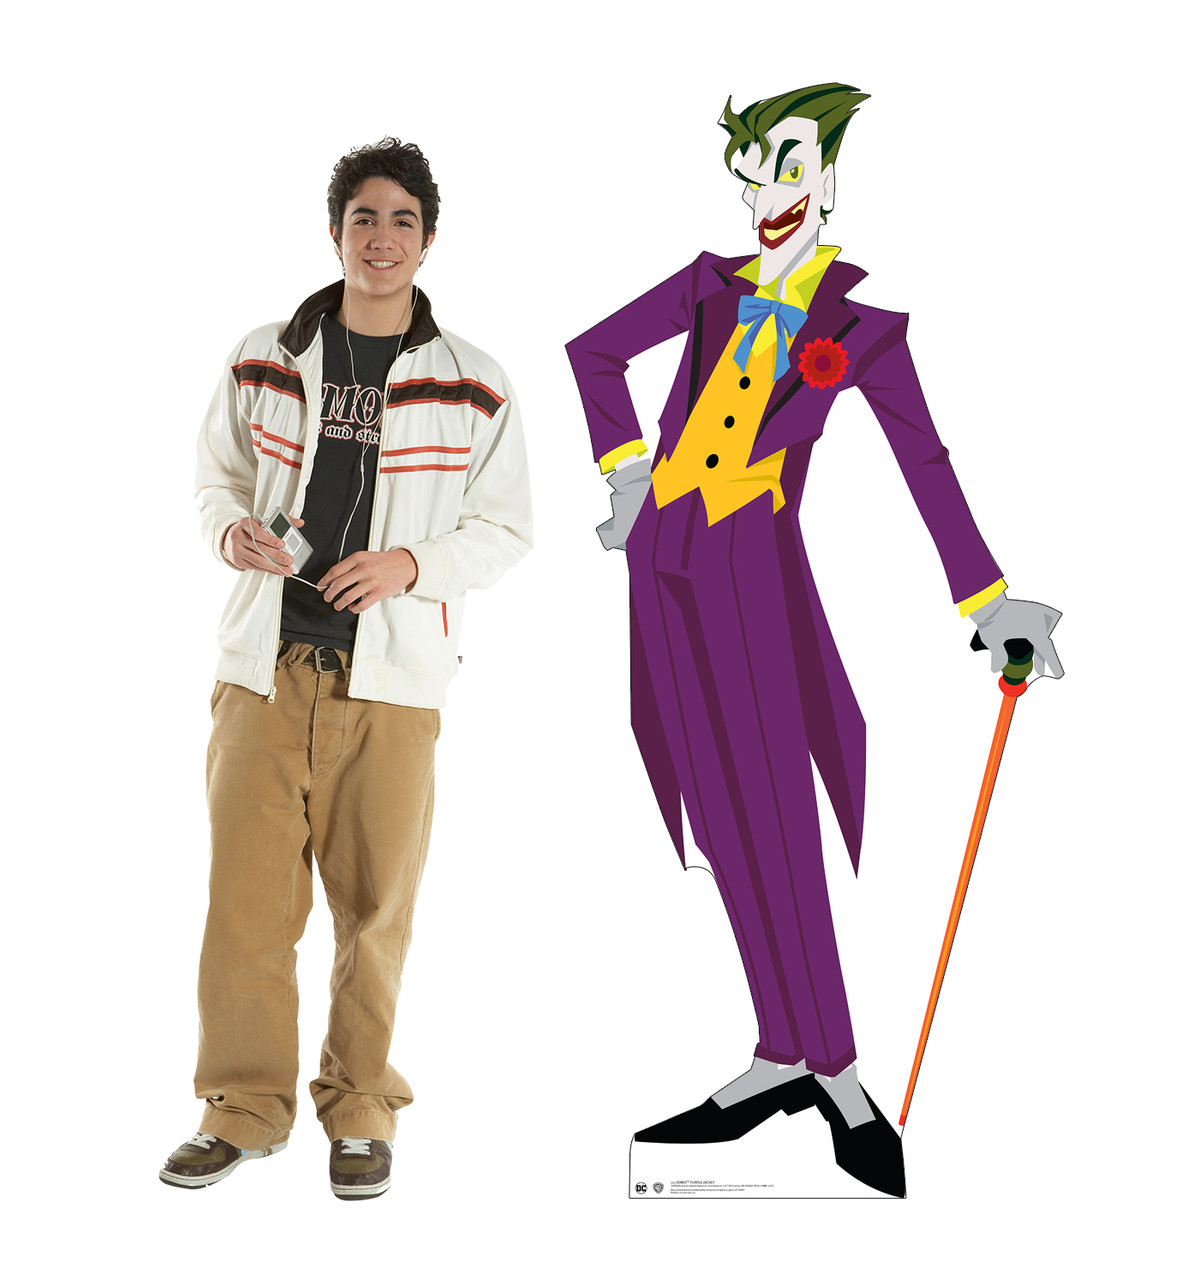 Life-size cardboard standee of The Joker in a purple suit with model.